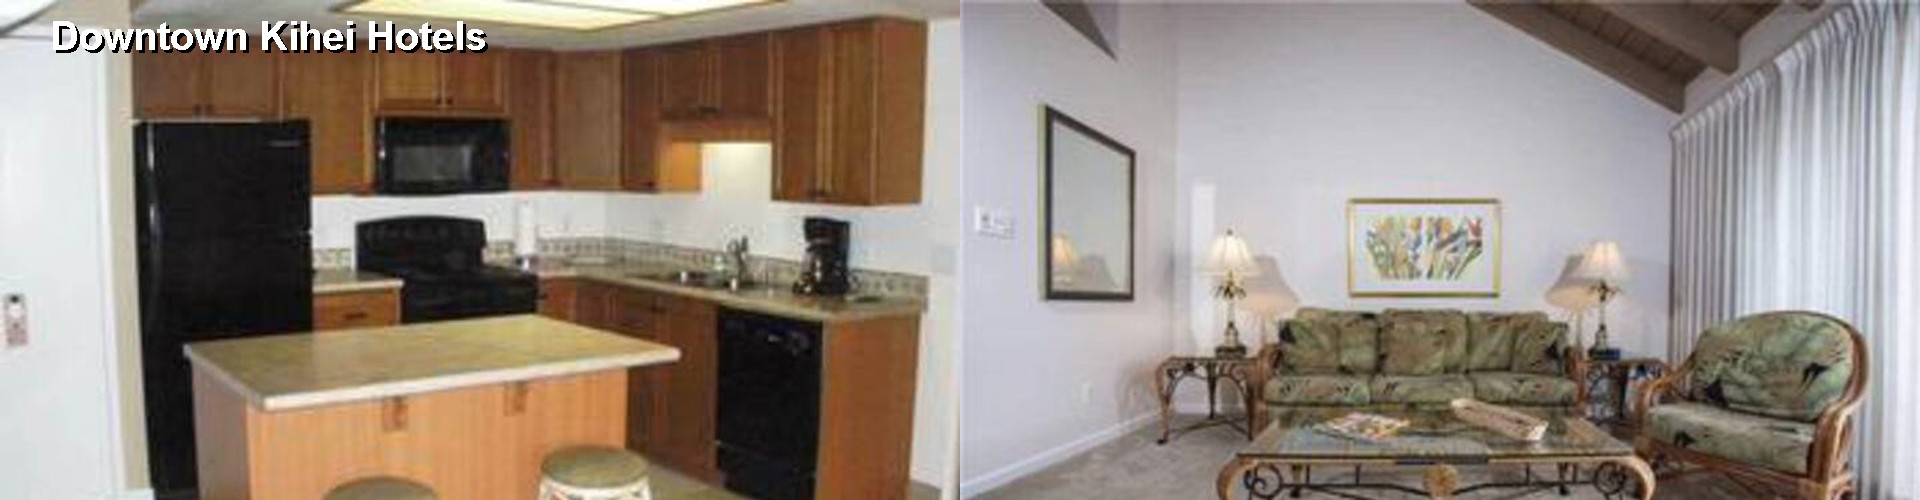 5 Best Hotels near Downtown Kihei